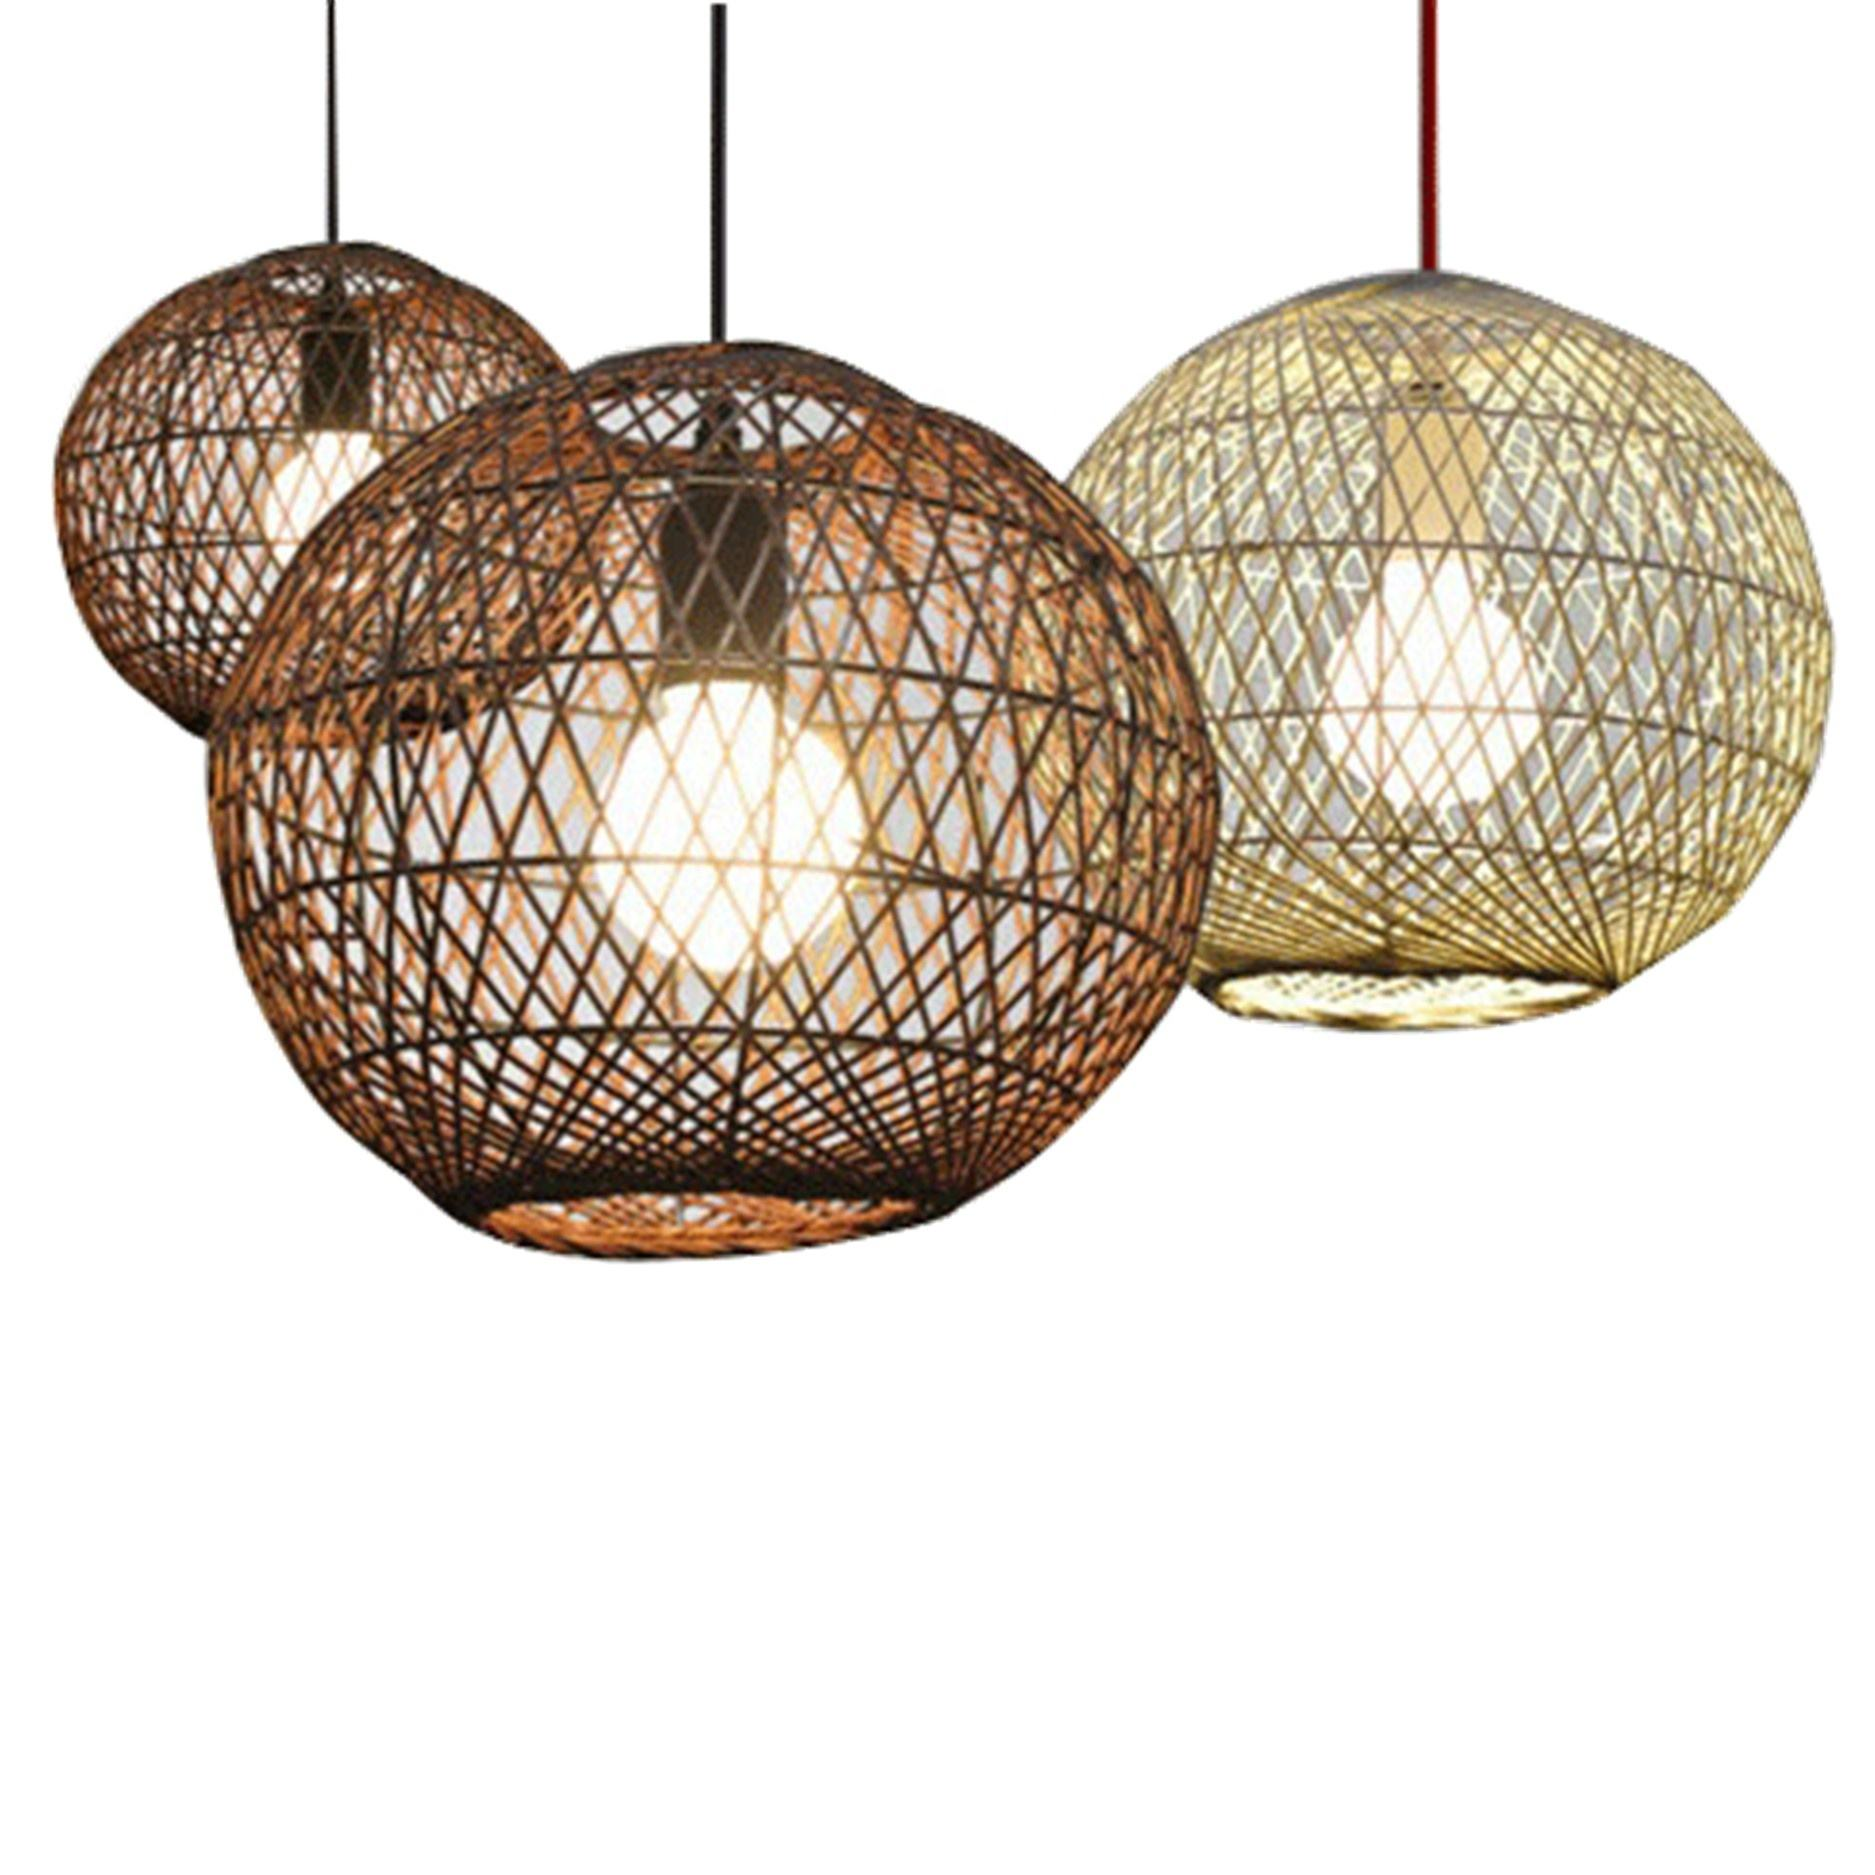 New Decoration Bamboo Rattan Woven Hanging Lamp Shade Indoor Pendant Light Fittings For Living Room